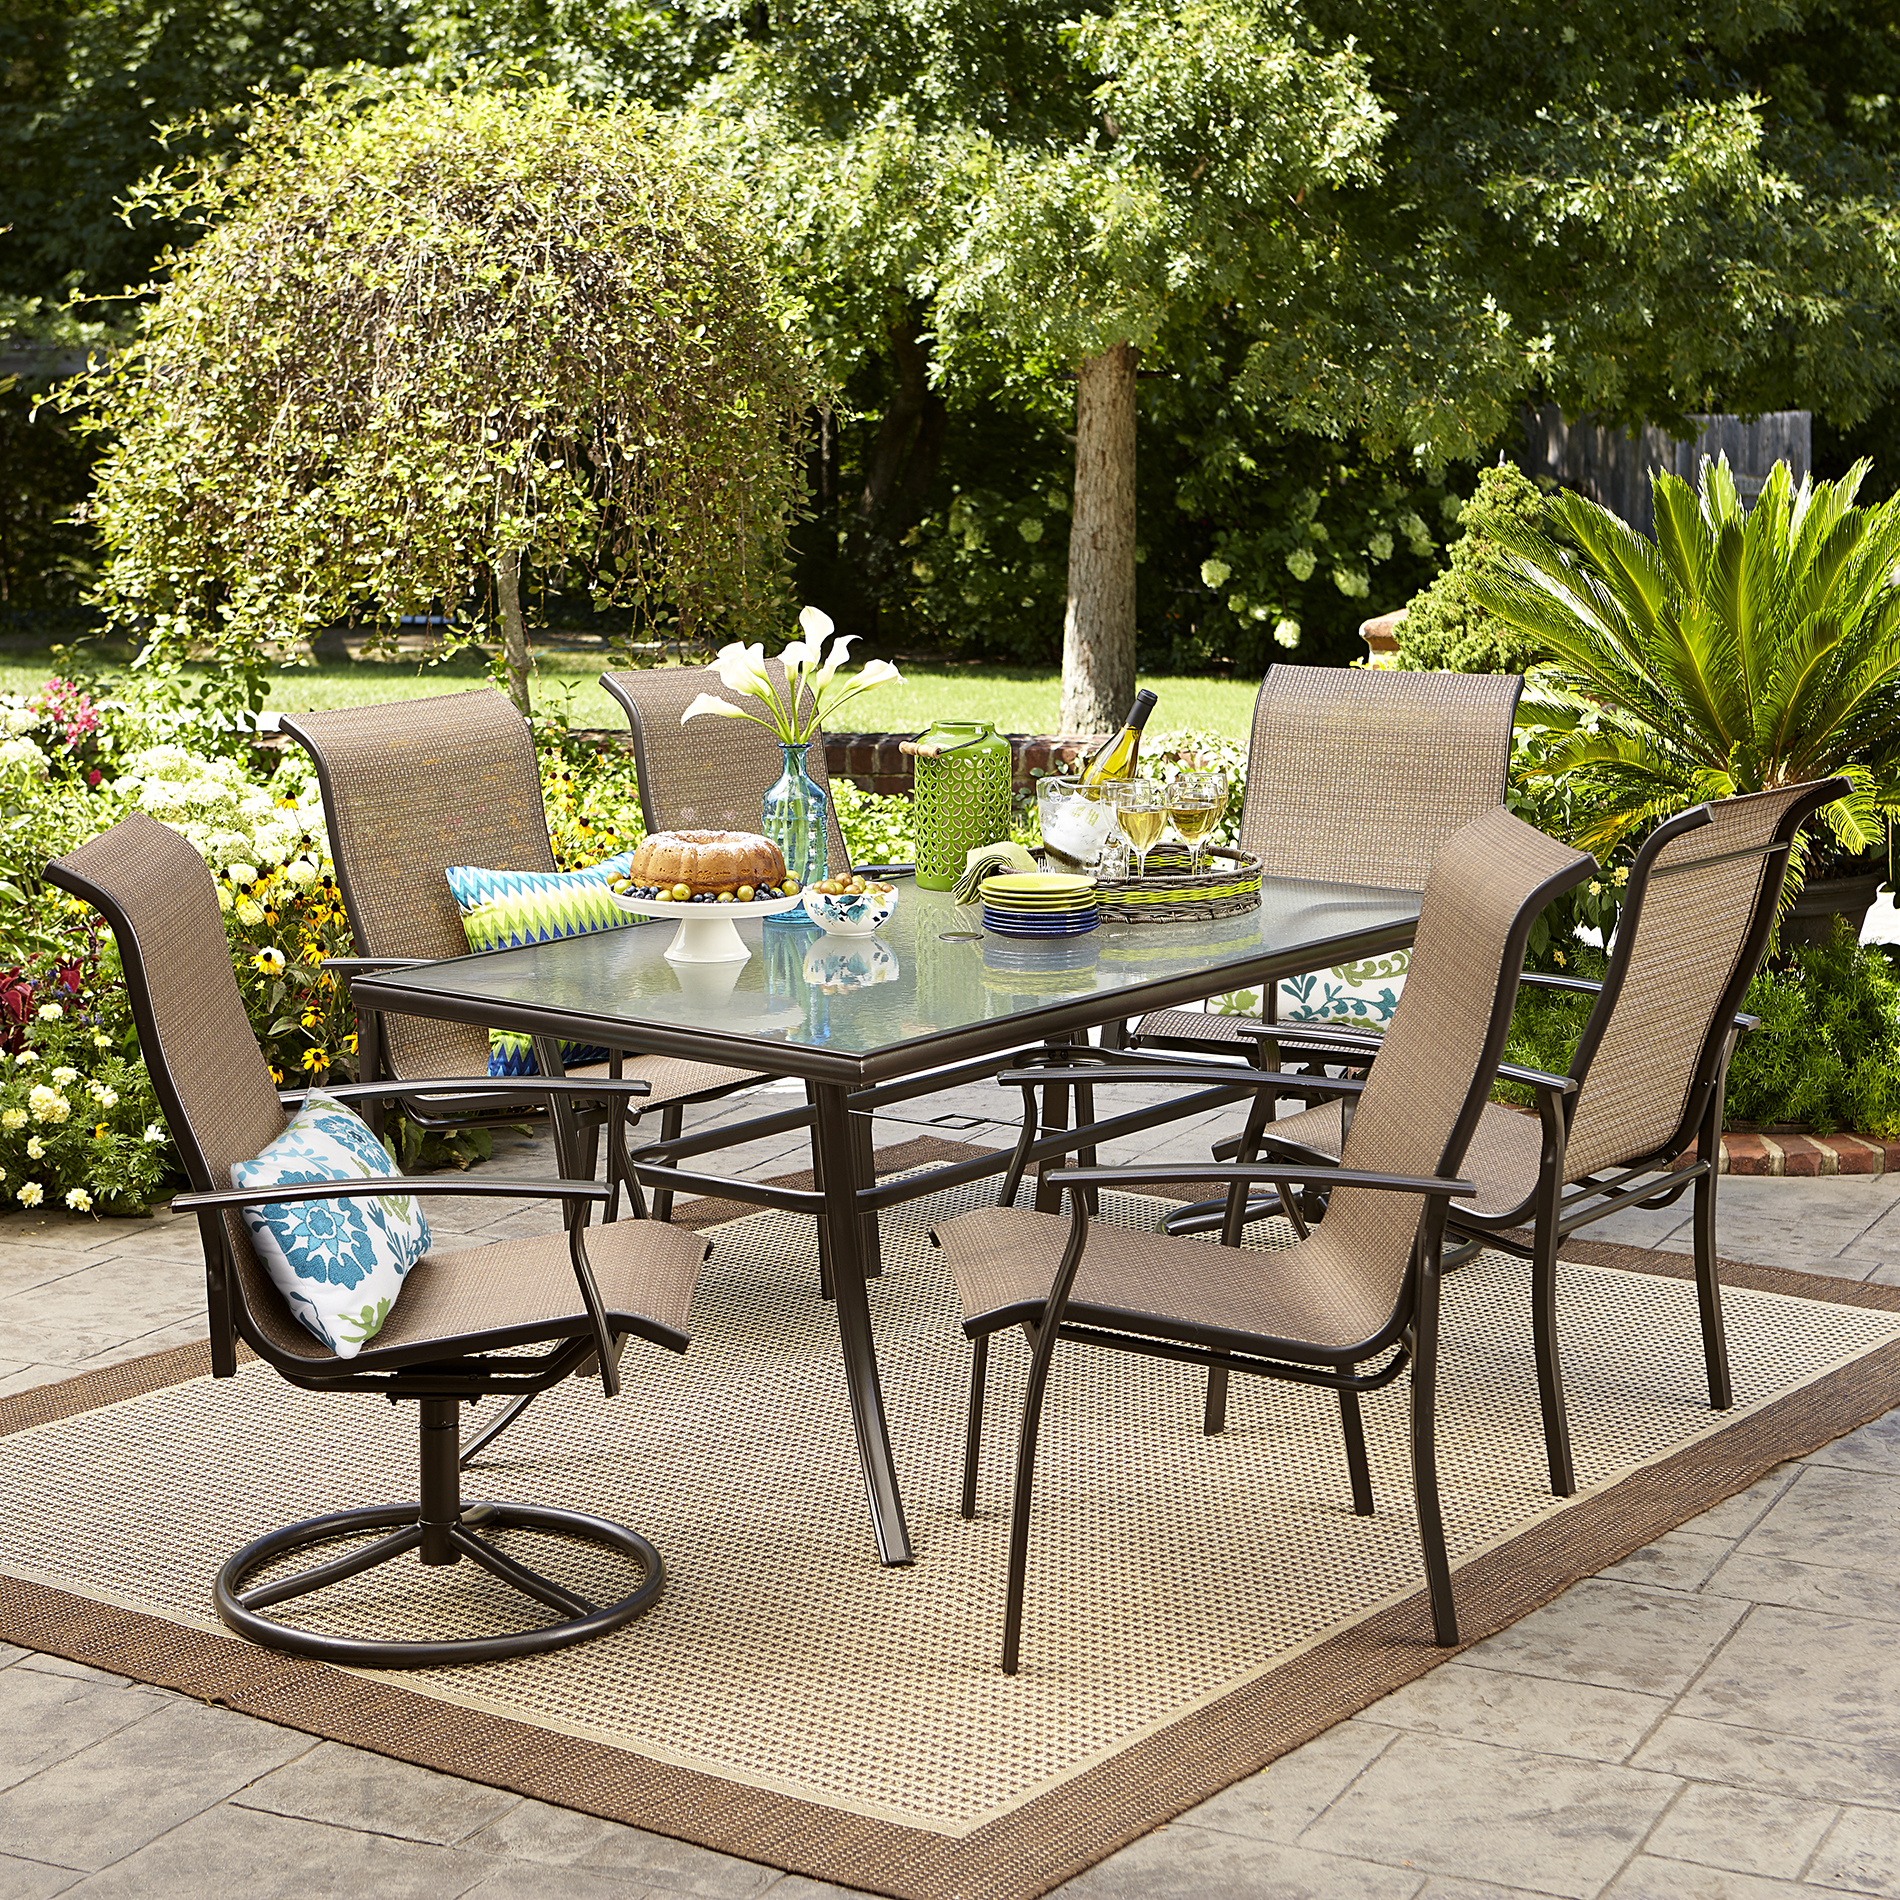 Best Patio Furniture Garden Oasis Harrison 7 Pc Textured Glass Top Dining Set